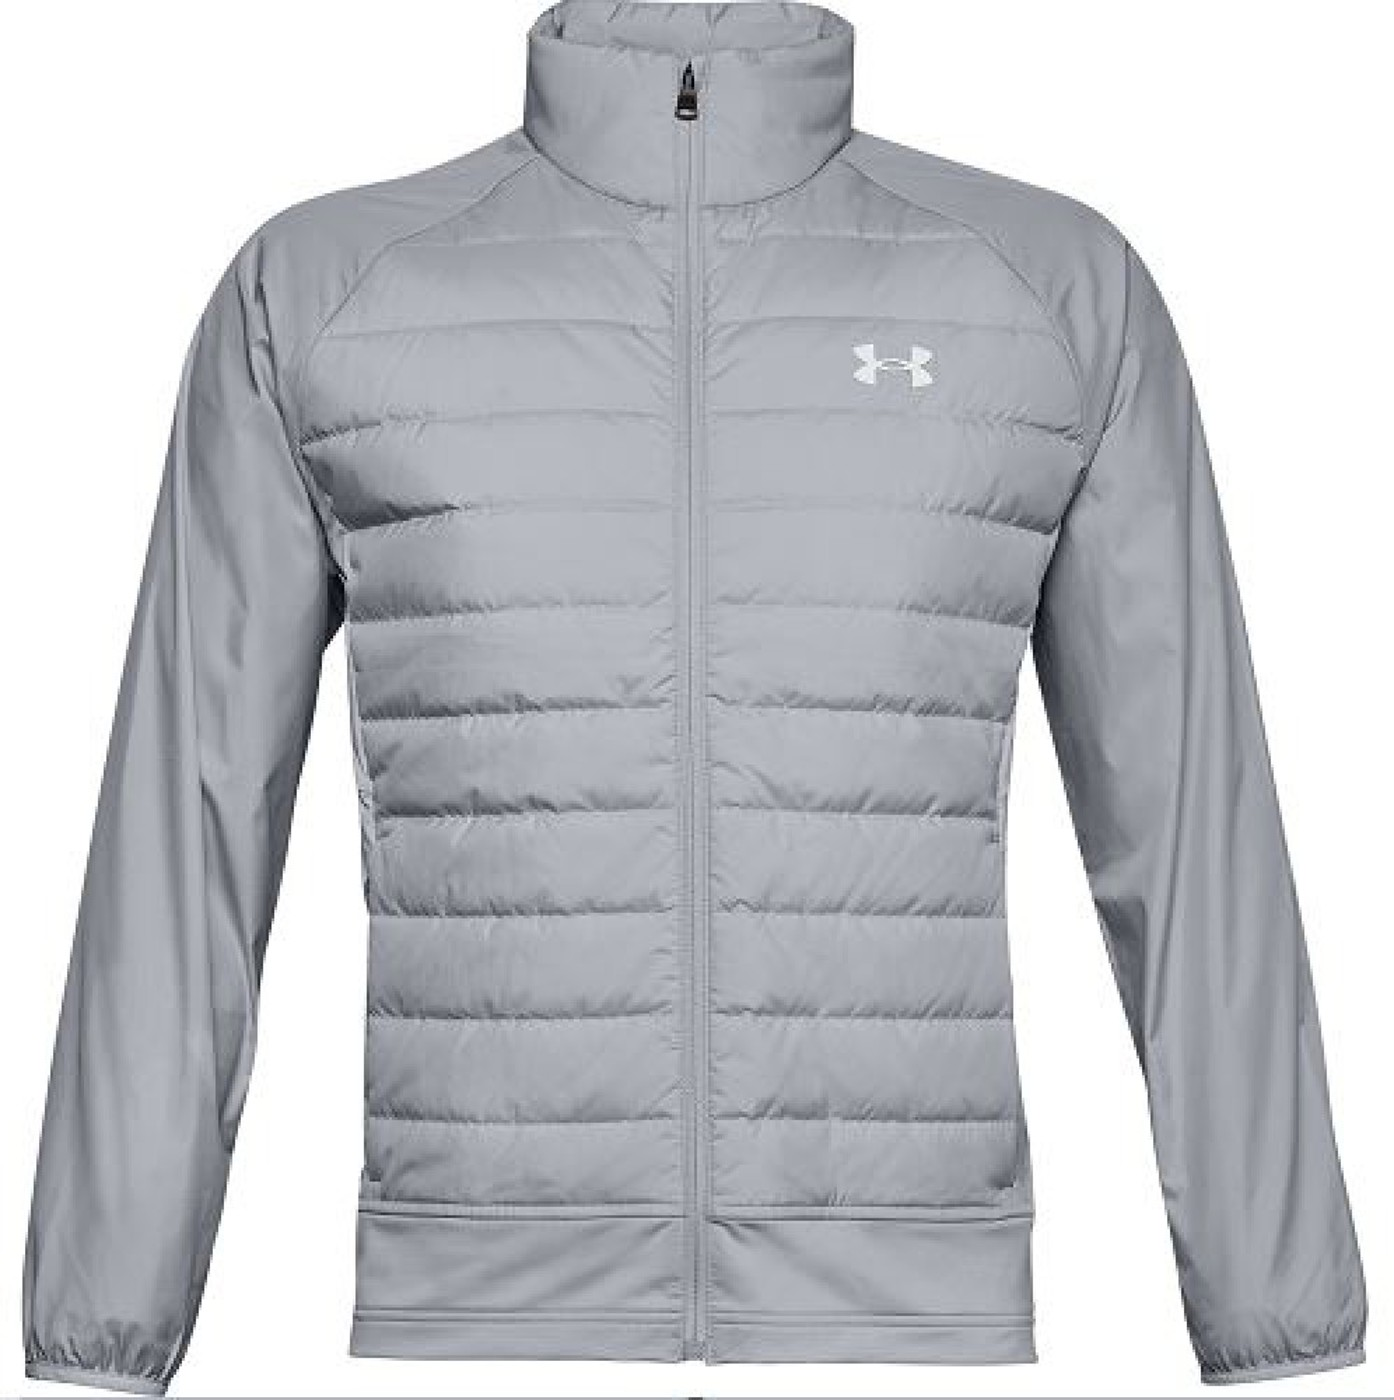 UNDER ARMOUR Run Insulate Hybrid Jacket - Herren